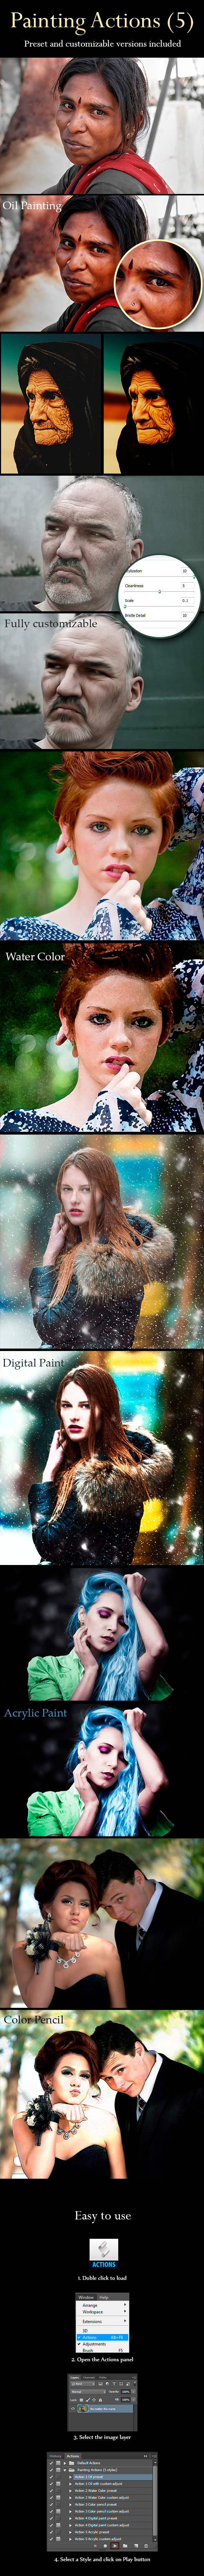 Painting Actions (5 Styles) - Photo Effects Actions